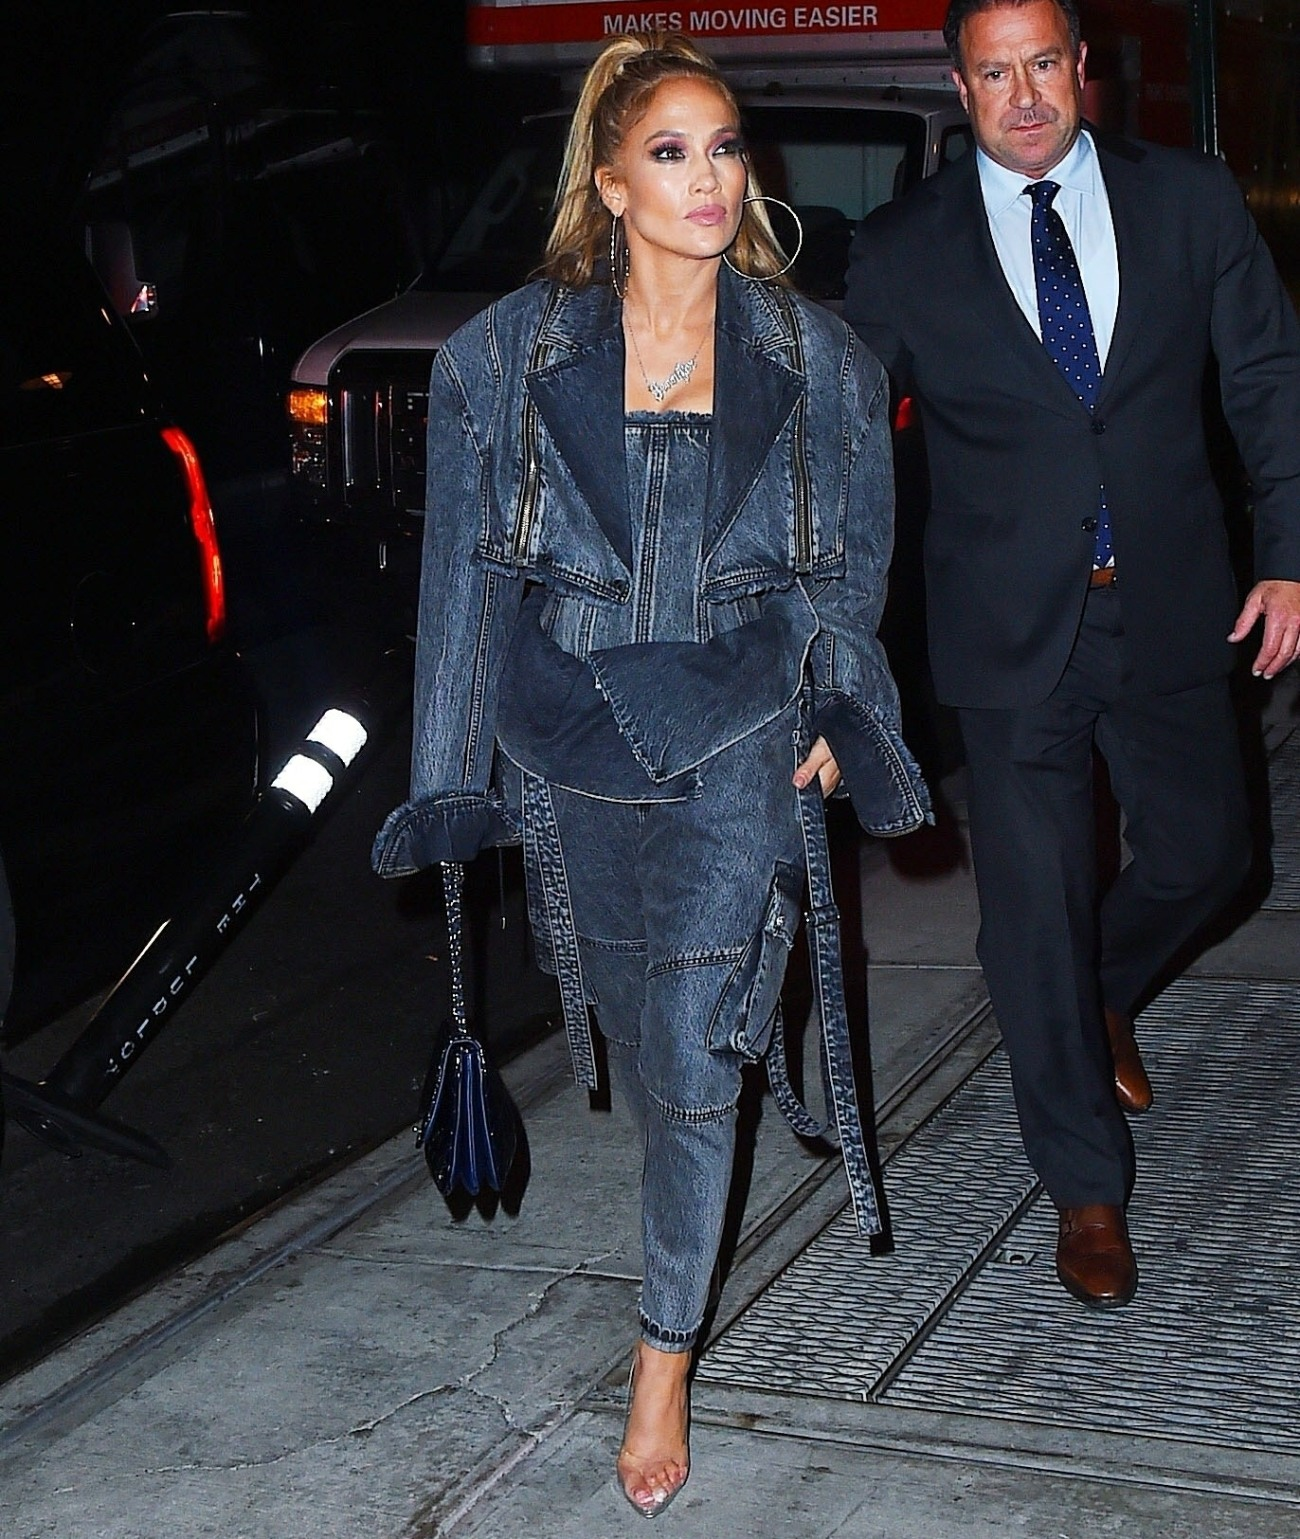 Jennifer Lopez heads to dinner rocking denim from head to toe!